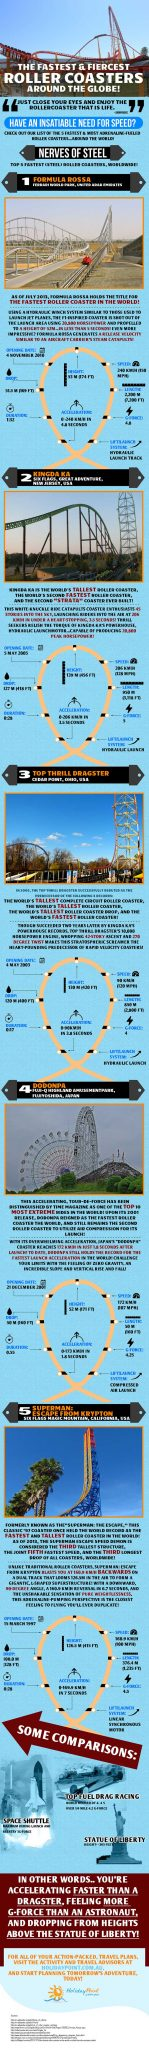 The Fastest & Fiercest Roller Coasters Around the Globe! [Infographic]